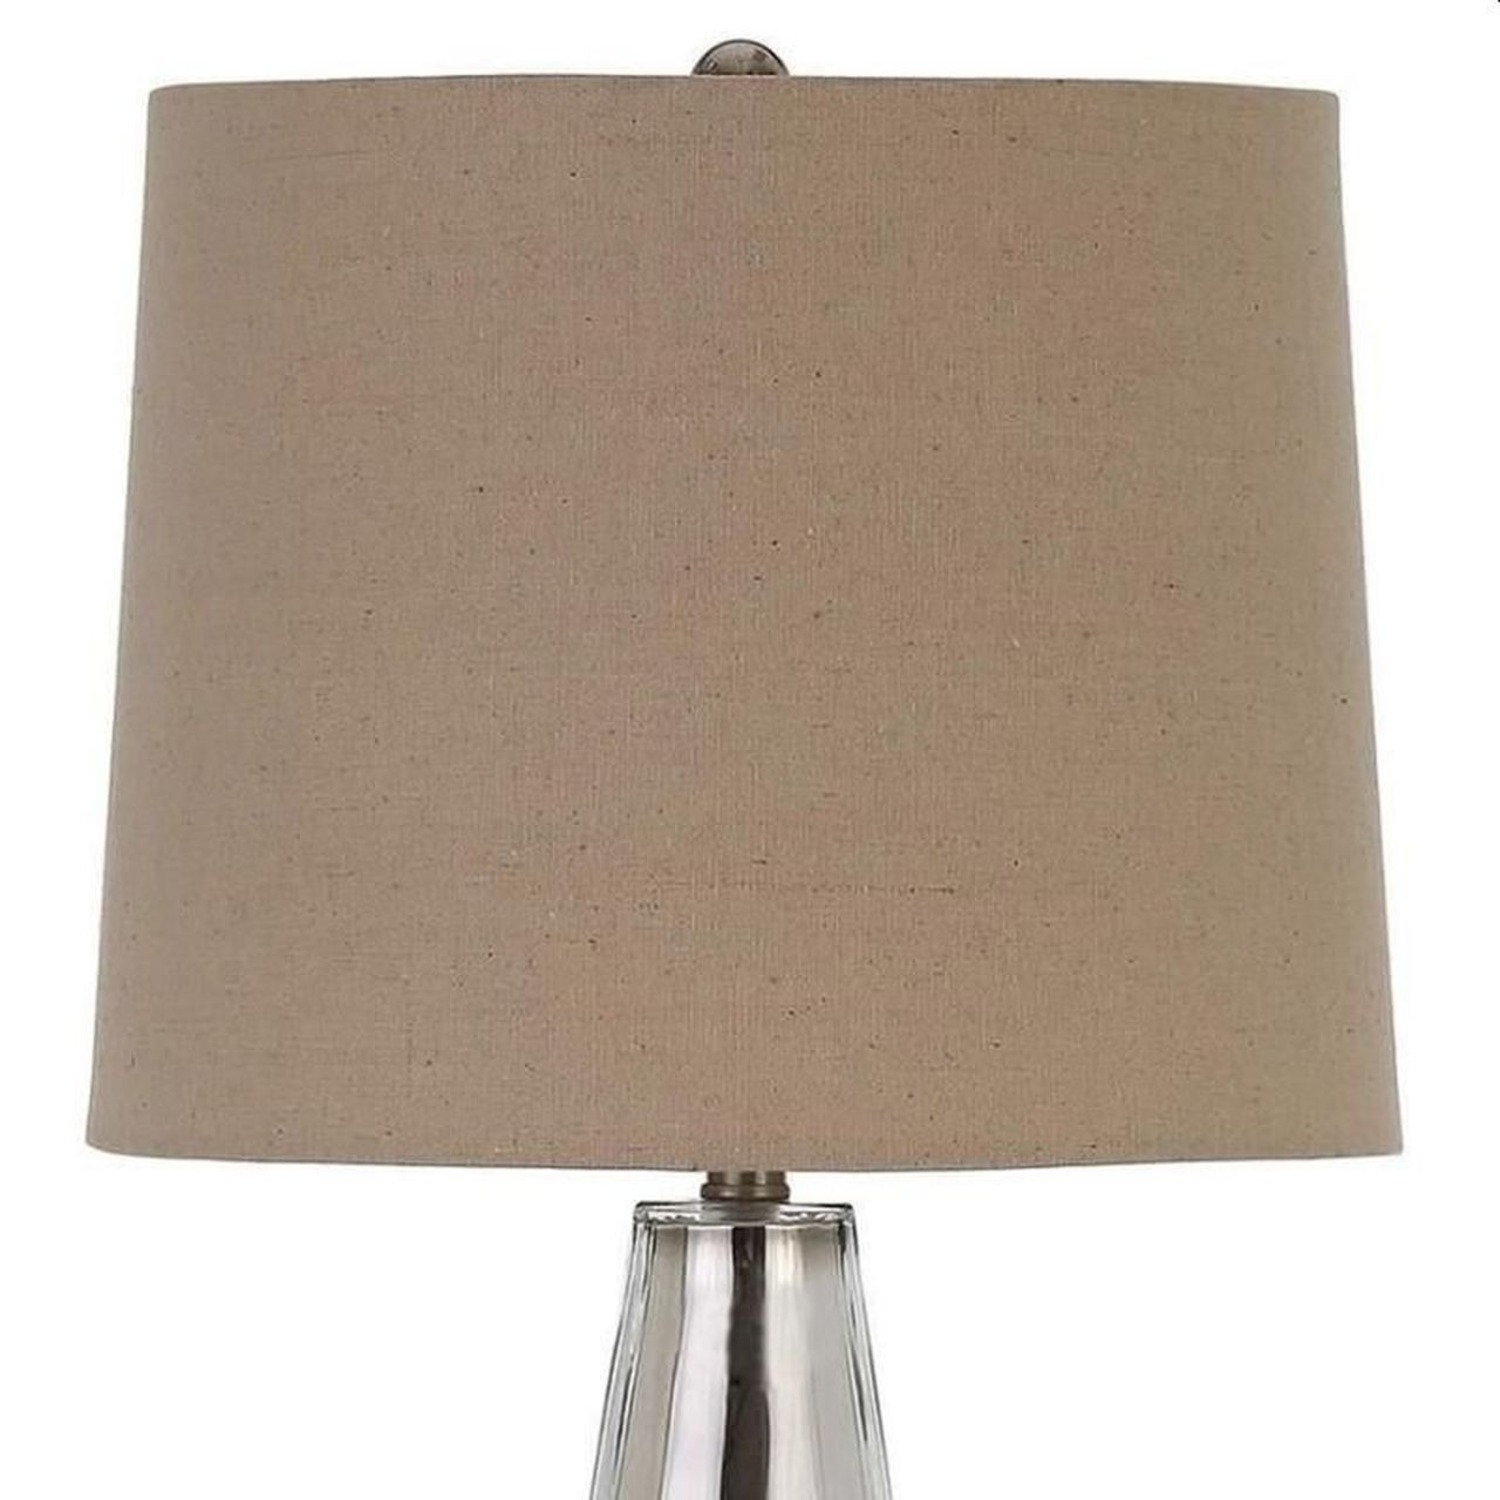 Table Lamp W/ Crystal-Like Base In Creamy White - image-1